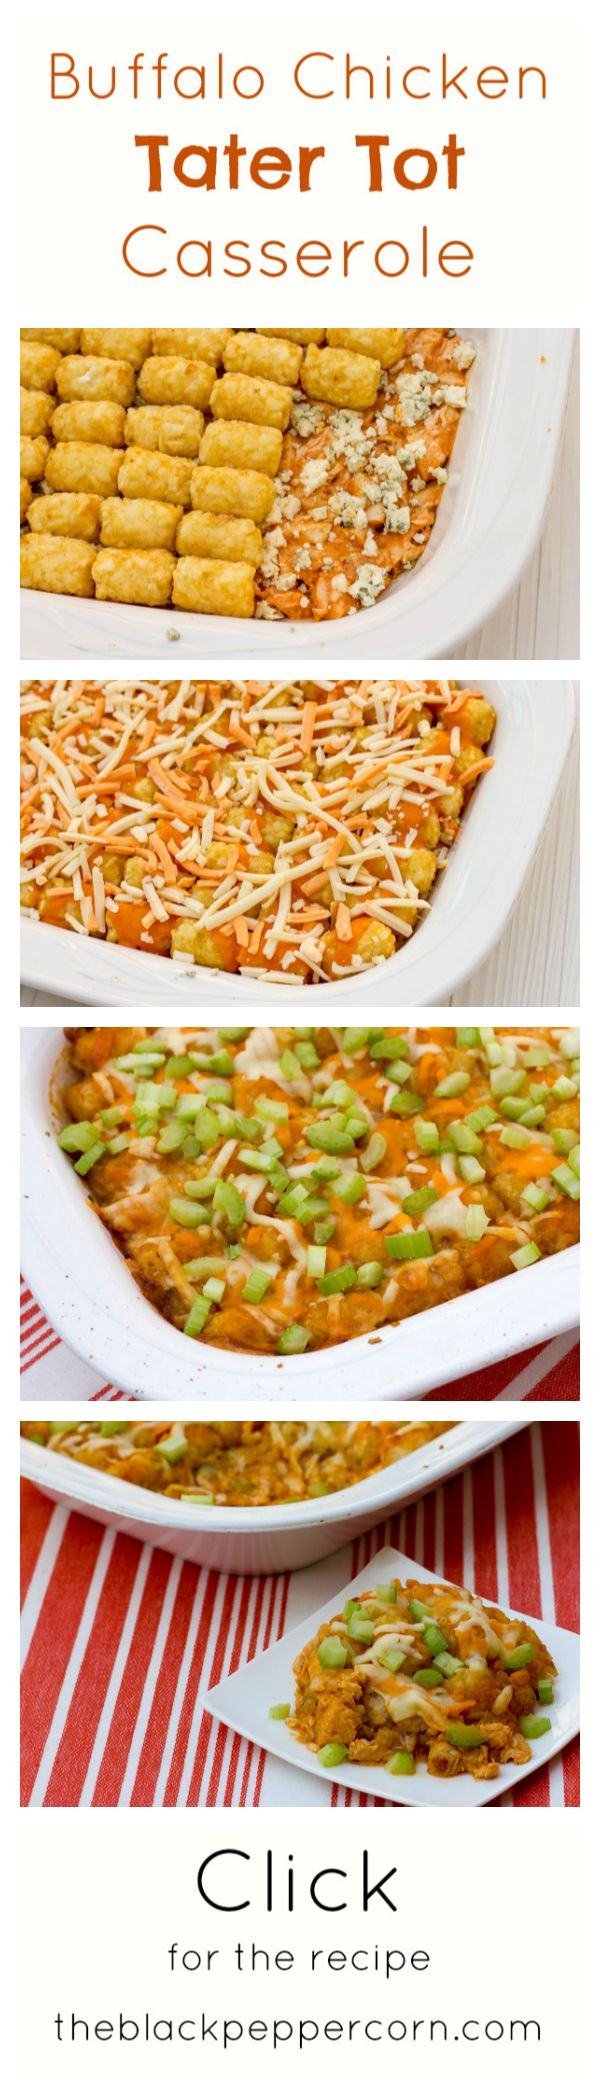 Buffalo Chicken Tater Tot Casserole- my mouth is seriously watering